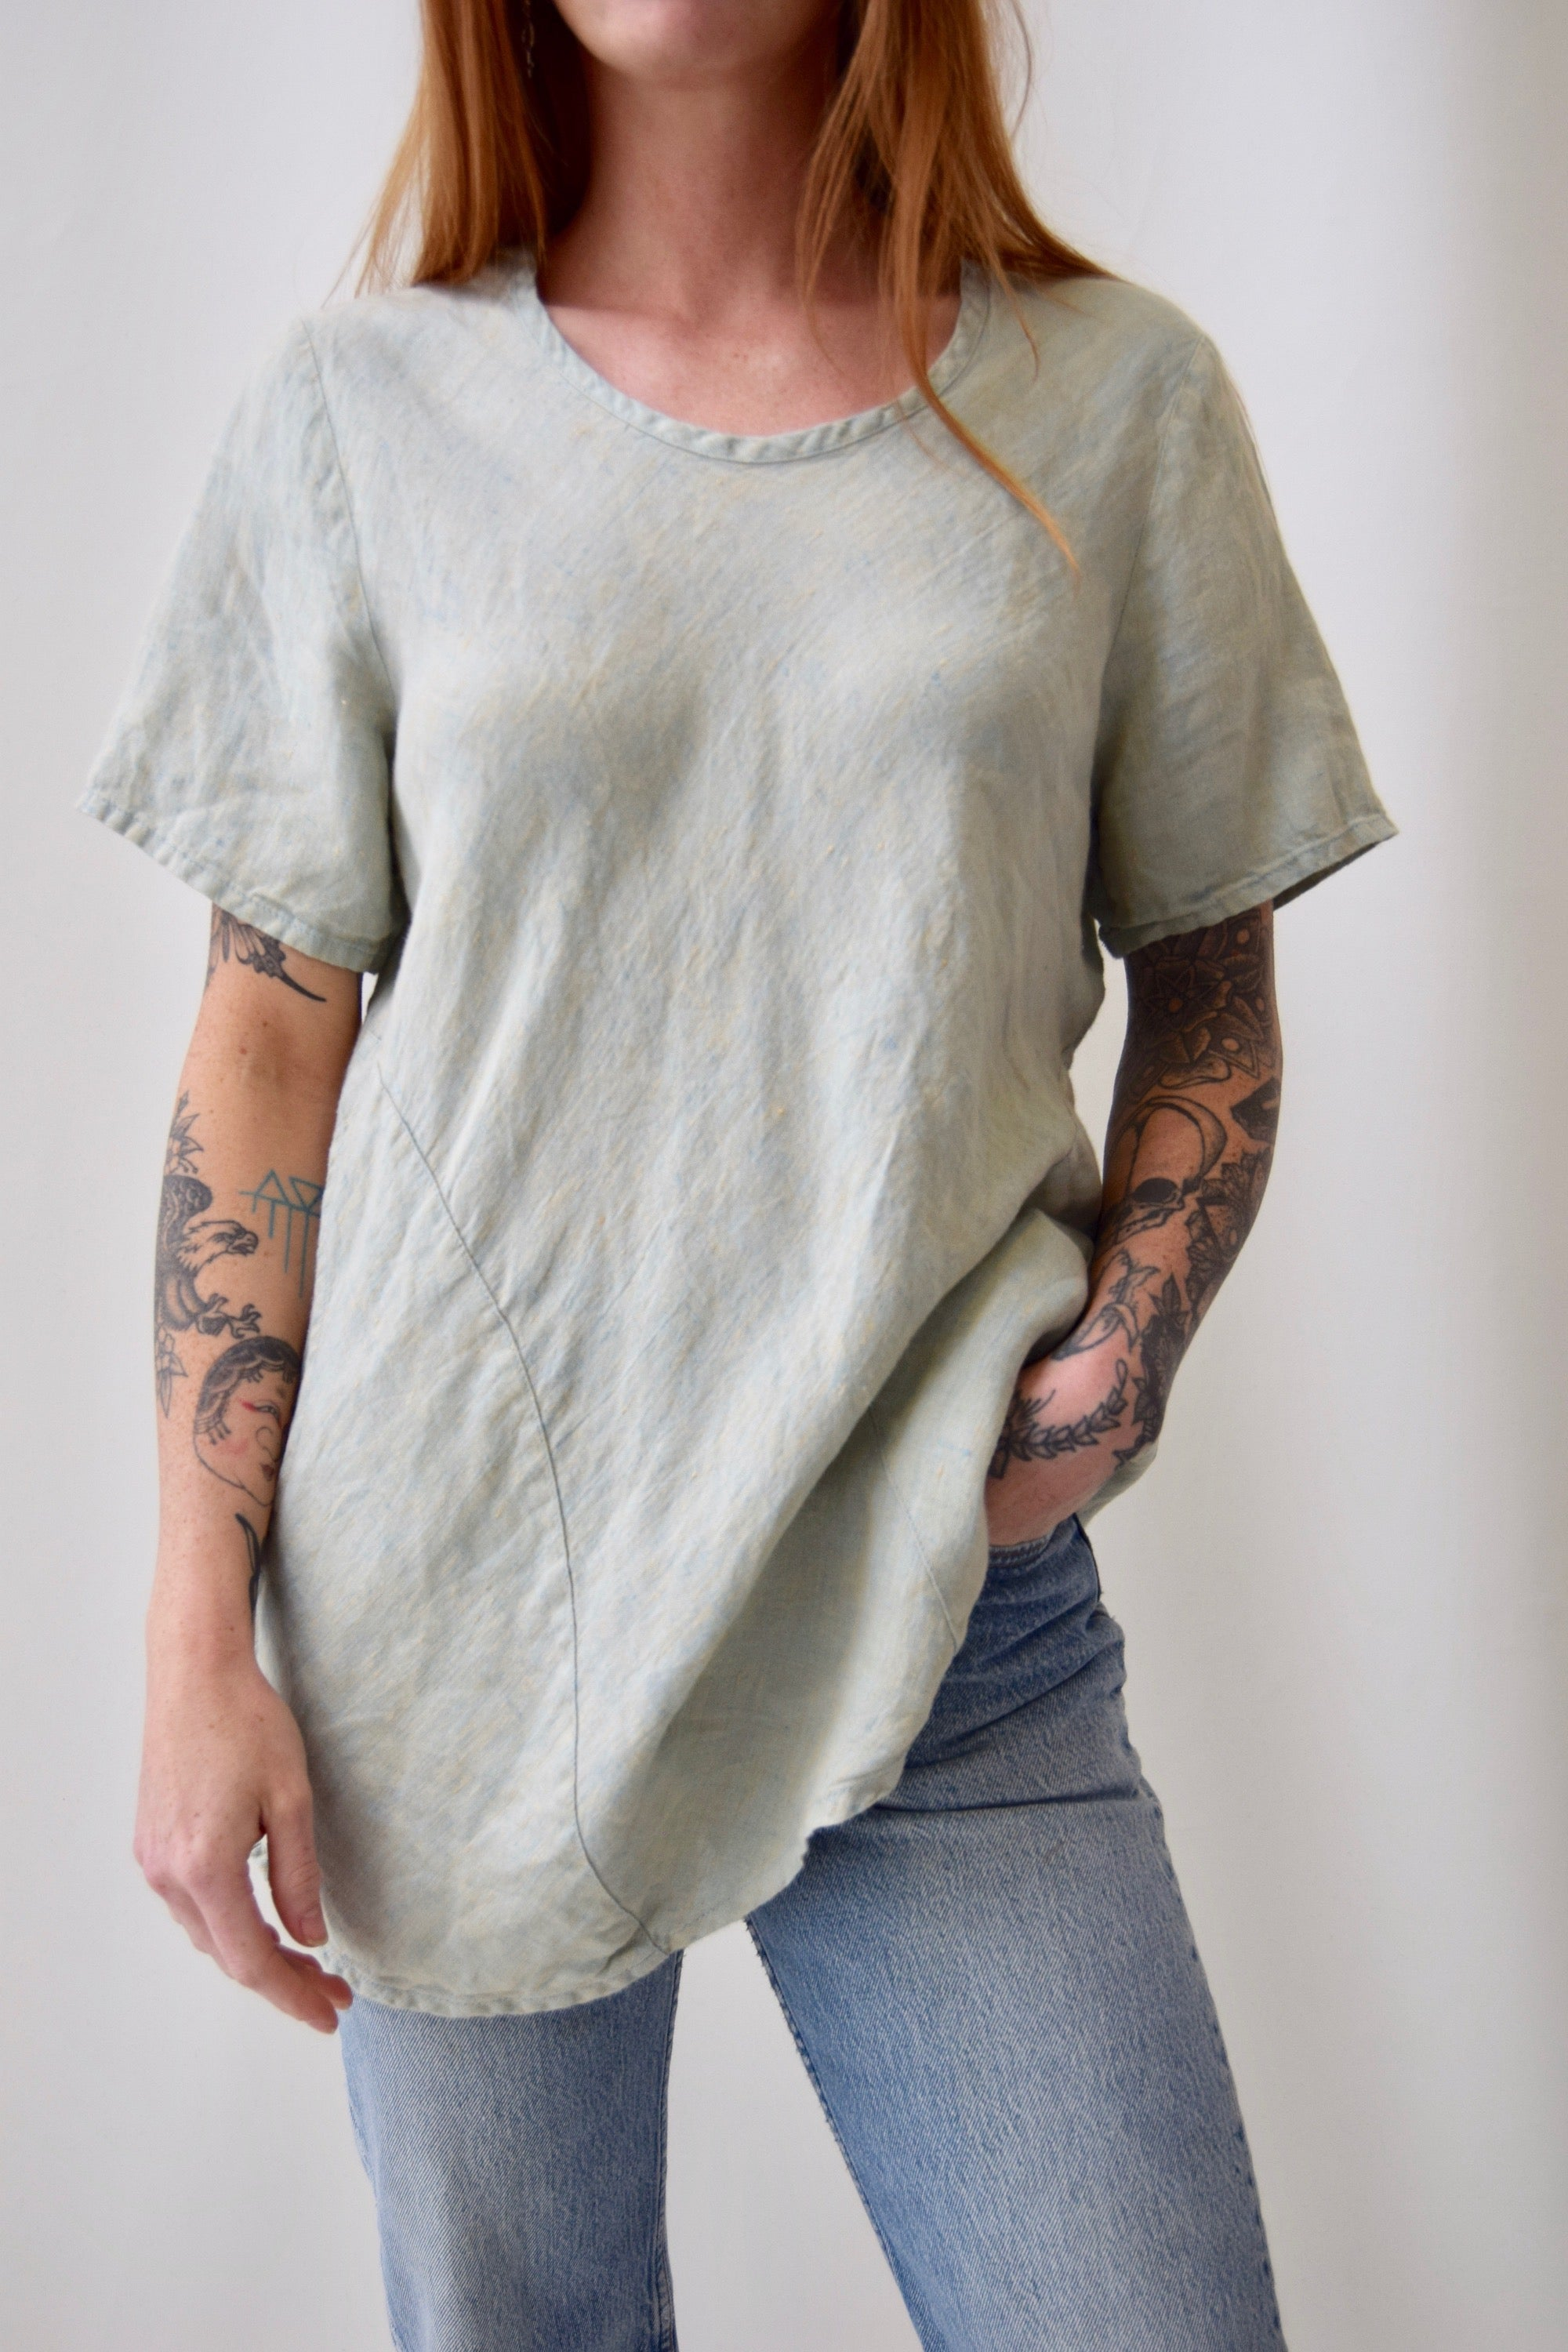 Mermaid Green FLAX Tunic